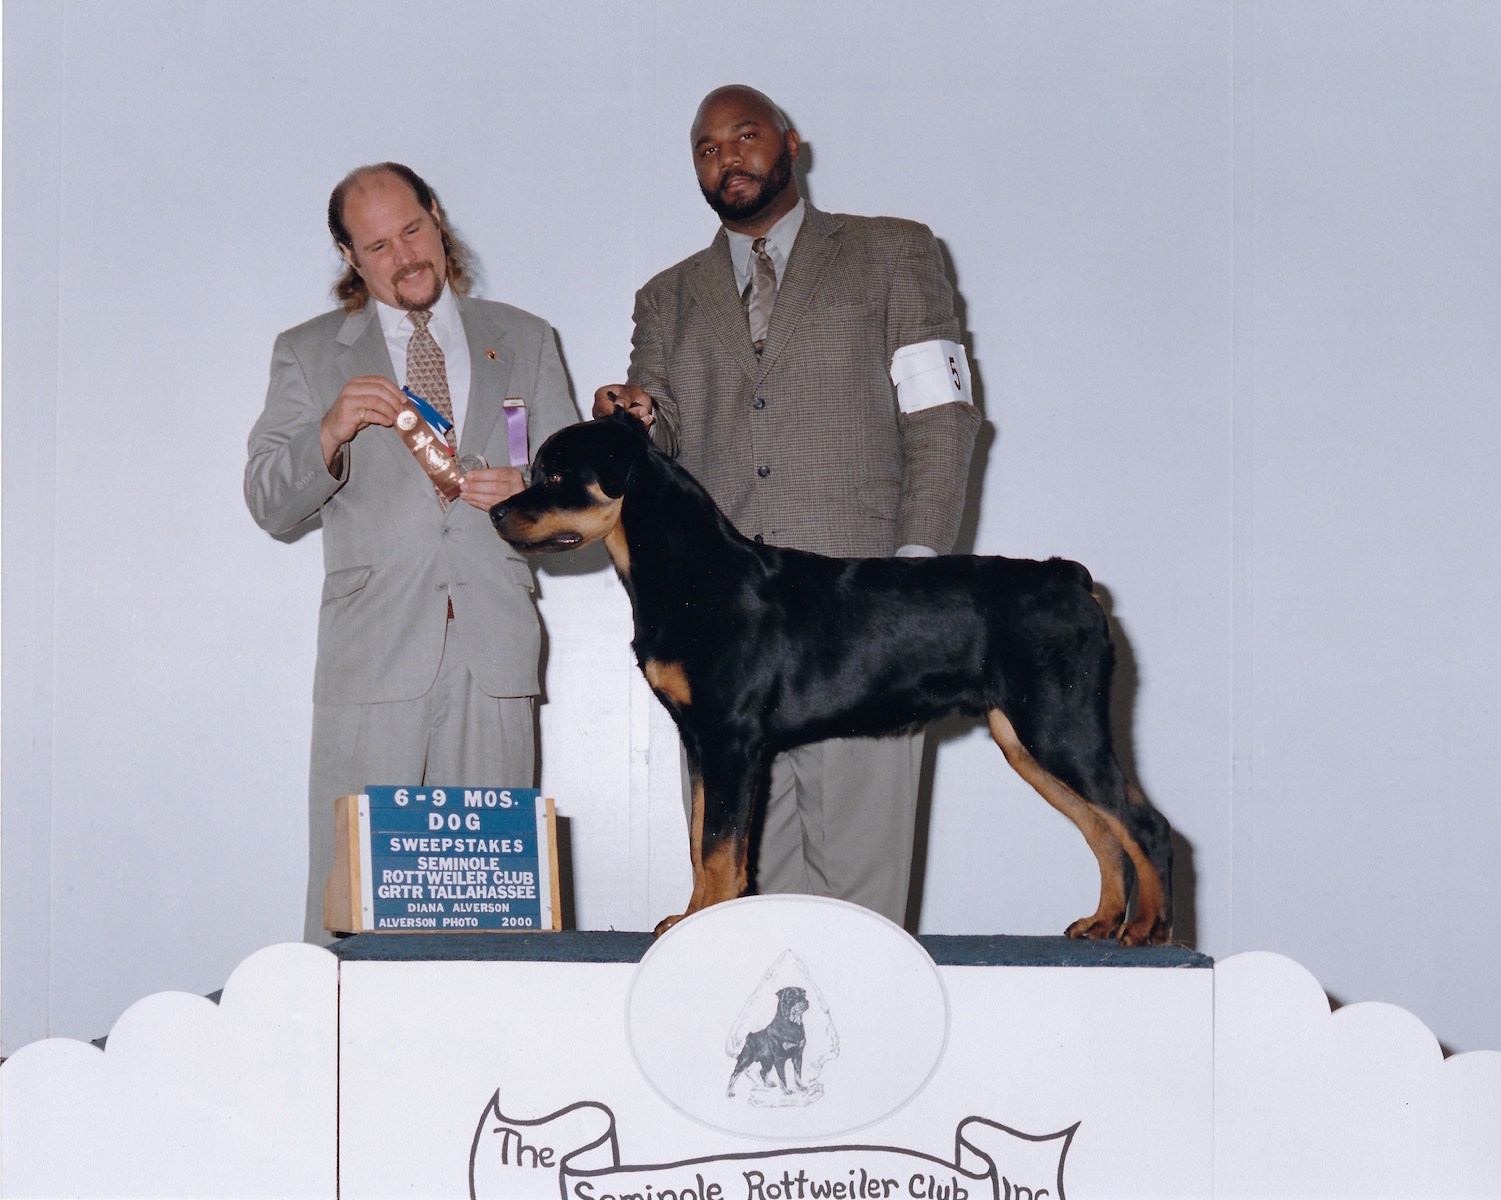 Marcus, 6-9 MOS, Dog, Sweepstakes Seminole Rottweiler Club GRTR Tallahassee,2000